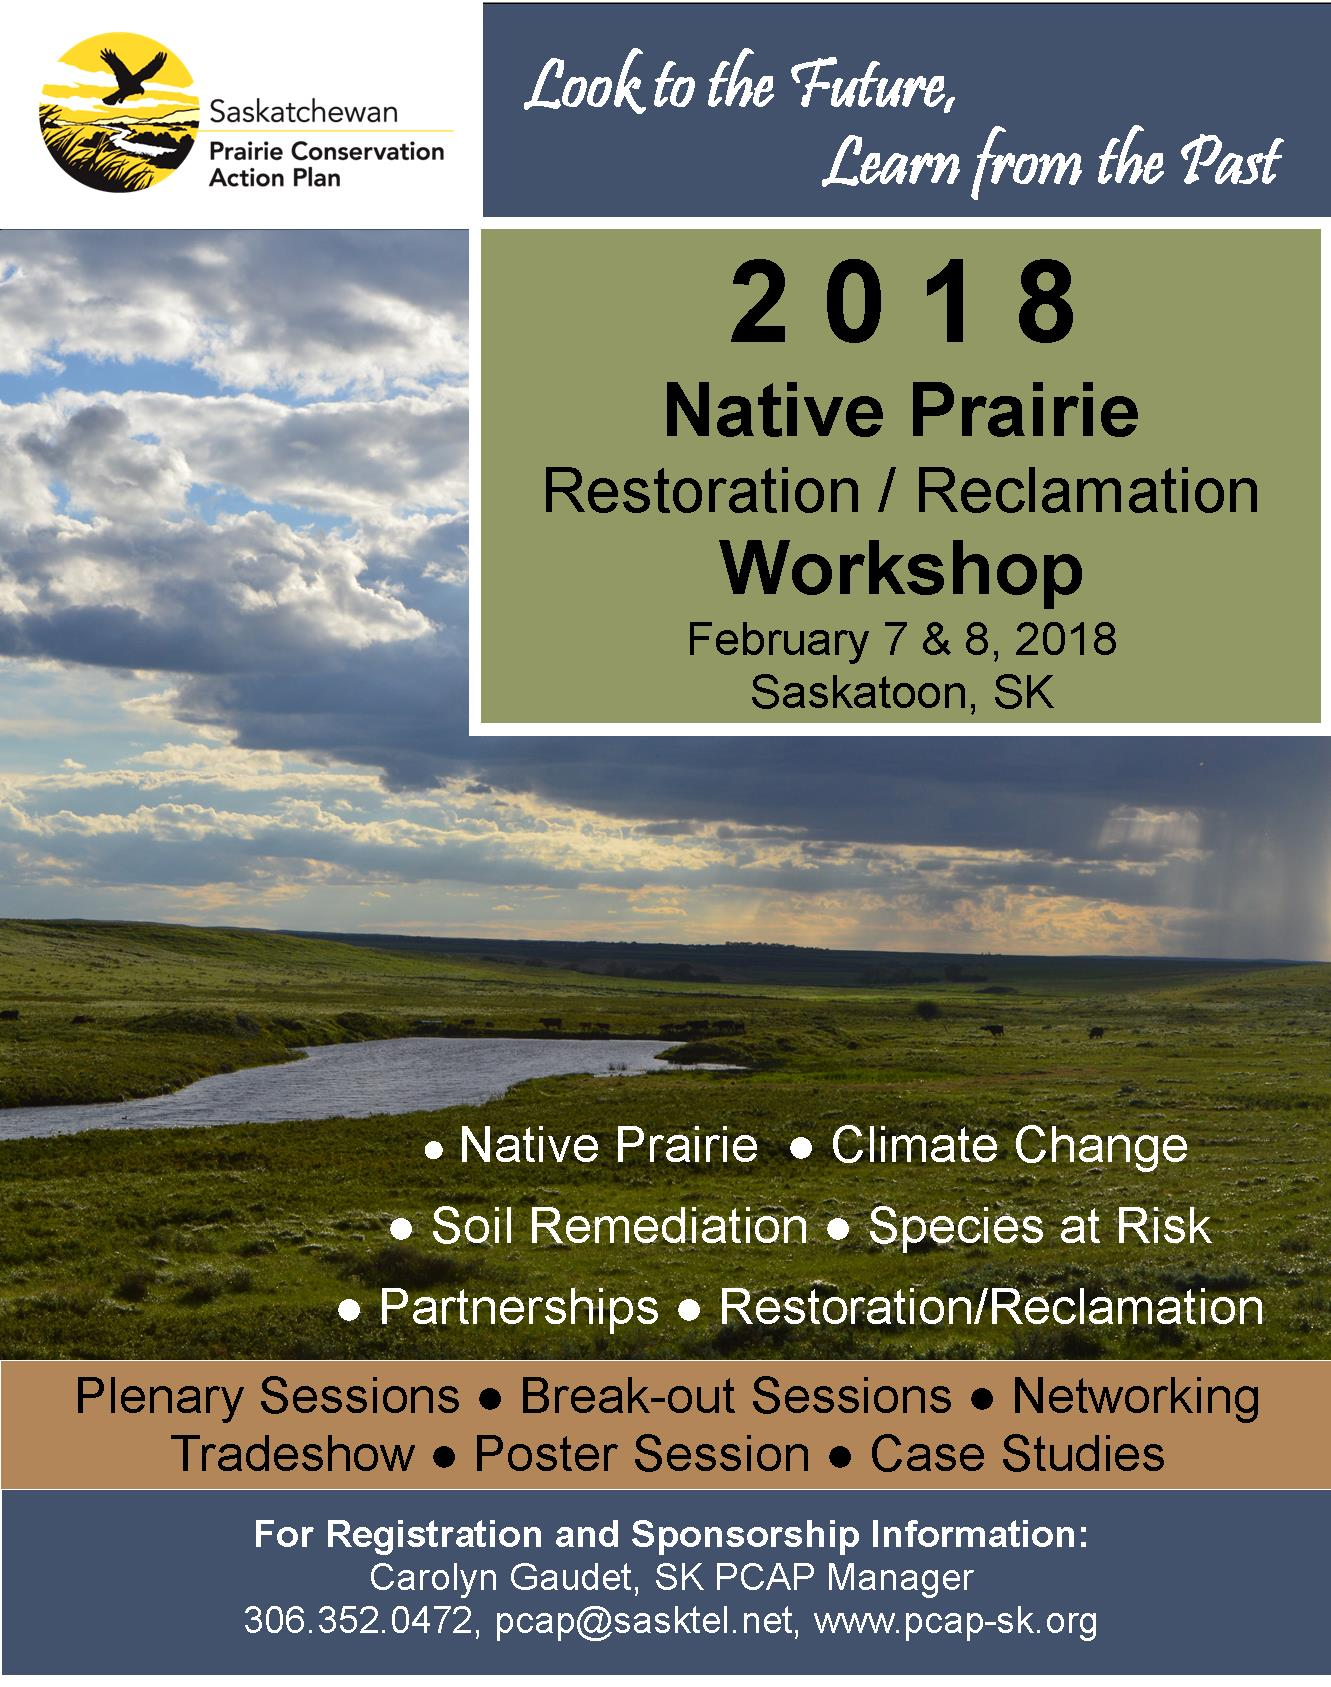 6th Native Prairie Restoration/Reclamation Workshop